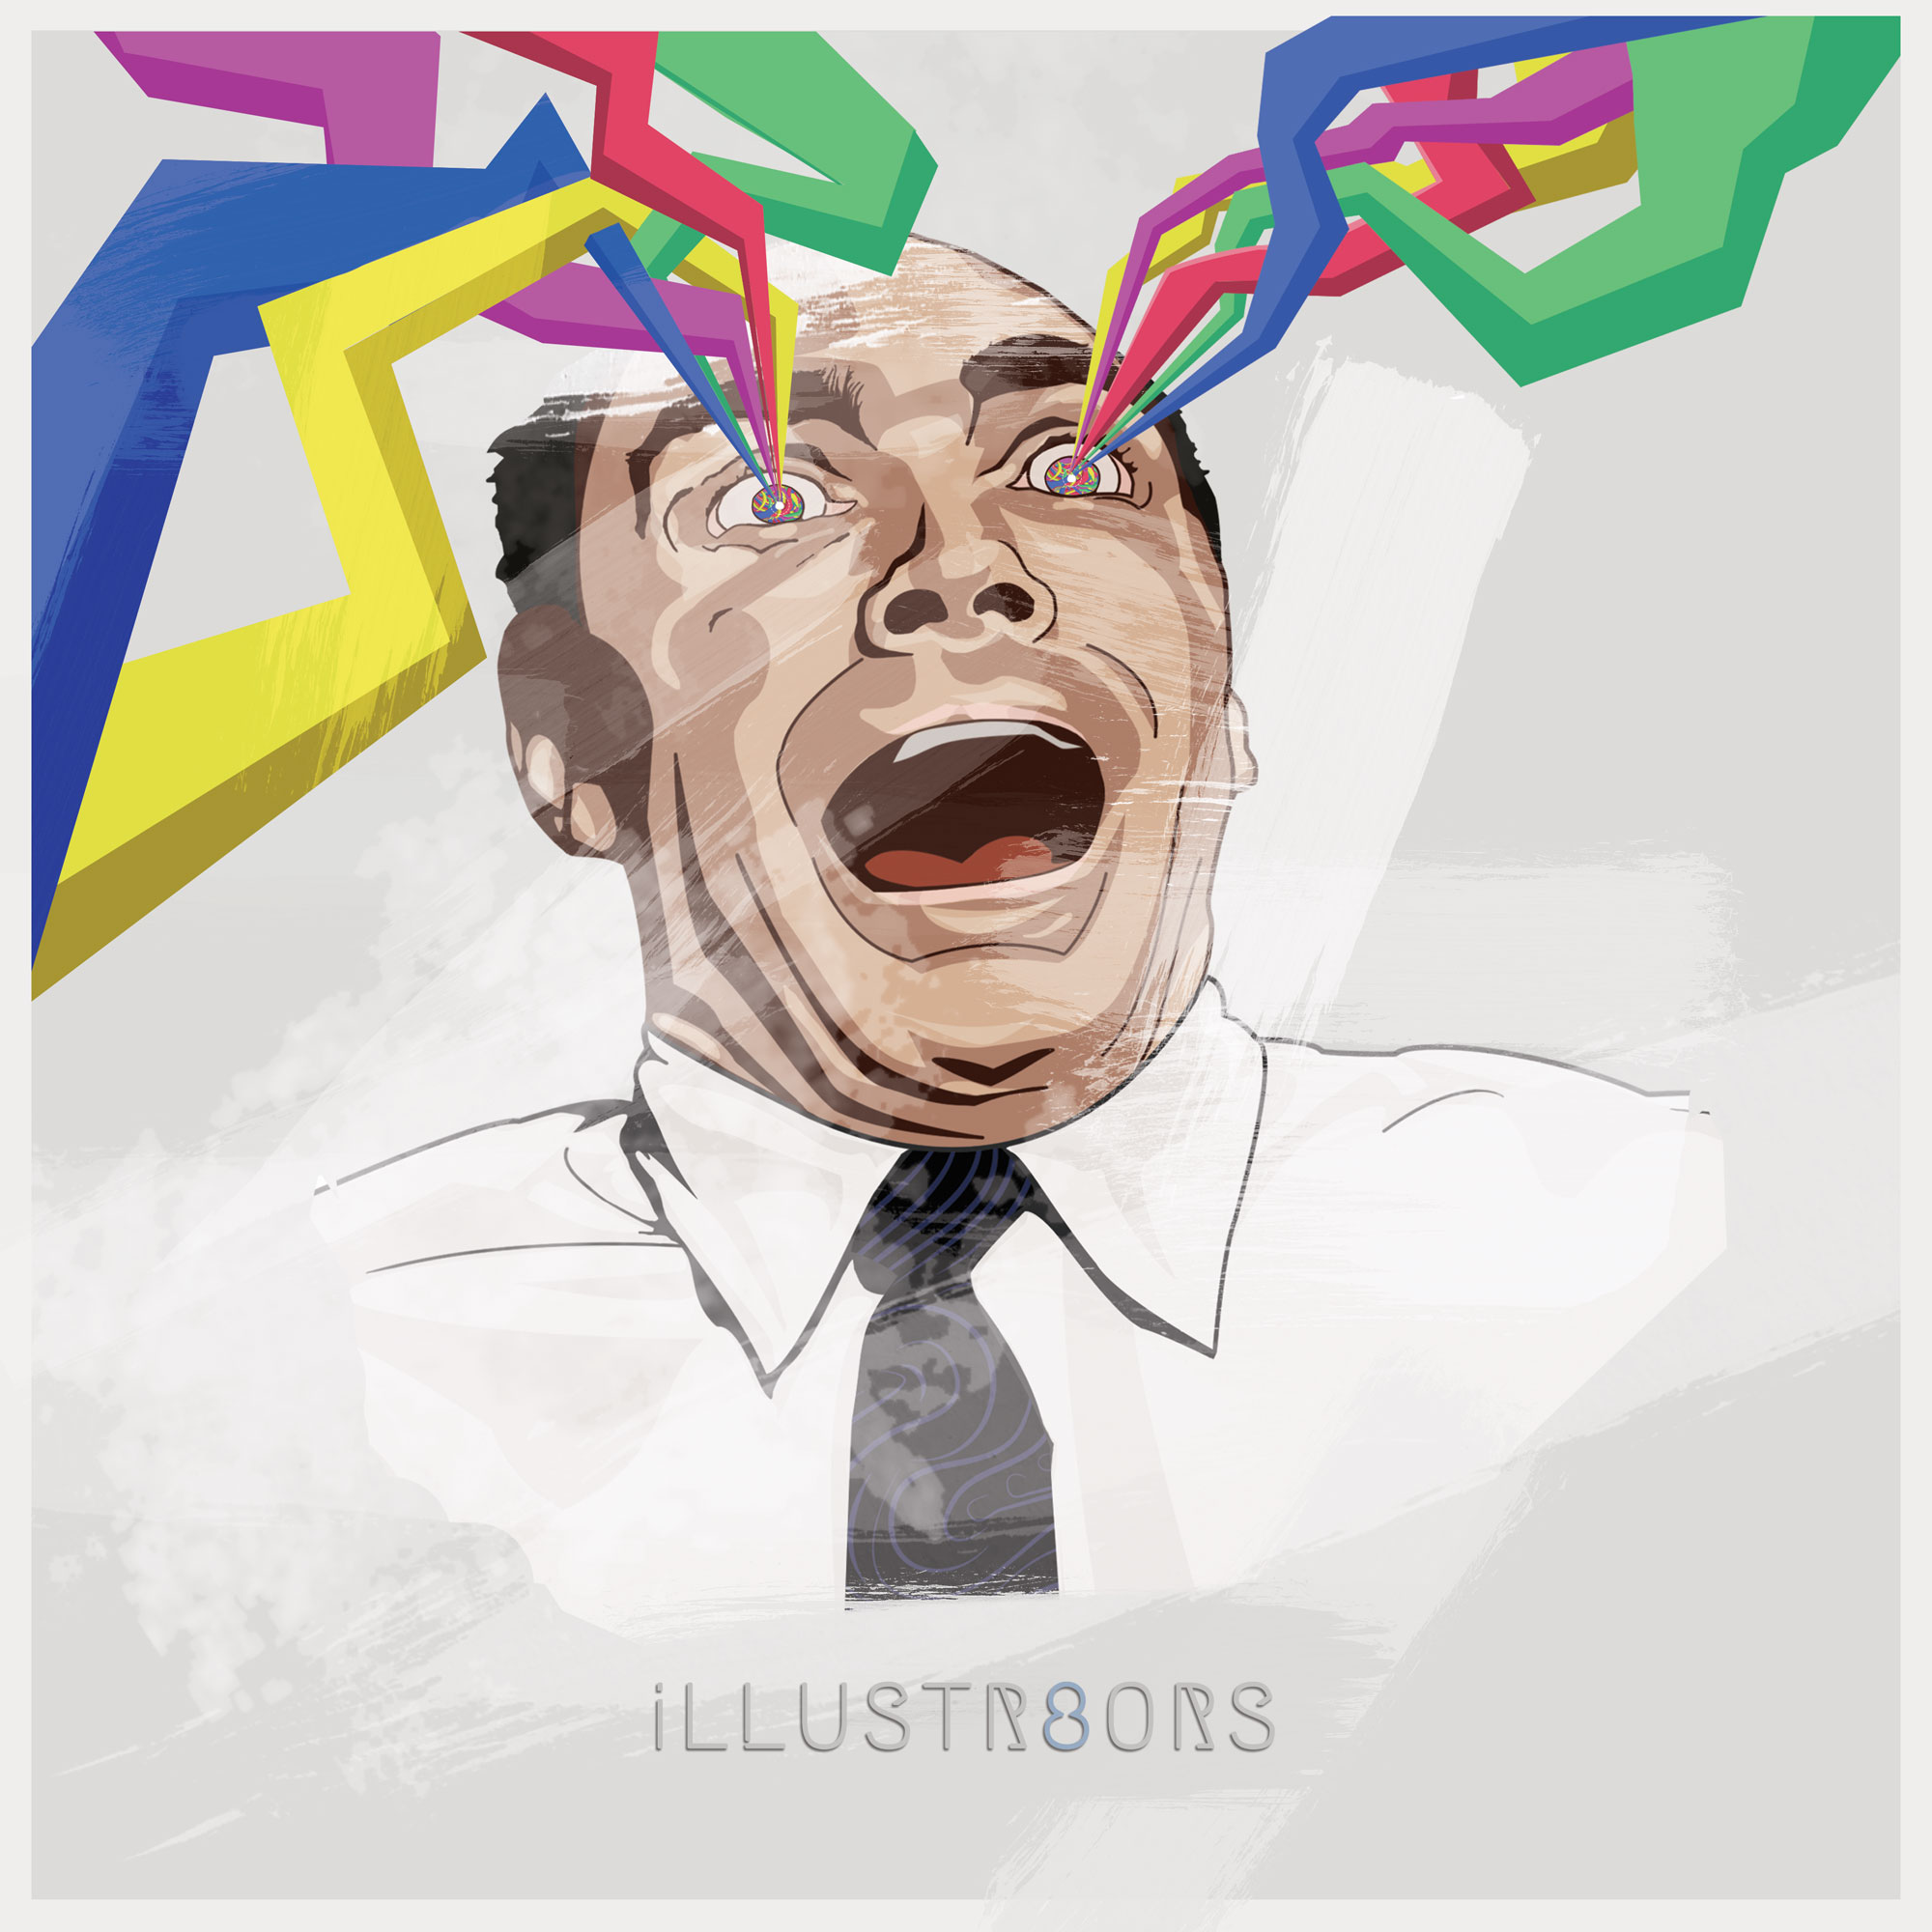 illustr8ors – Debut E.P Review